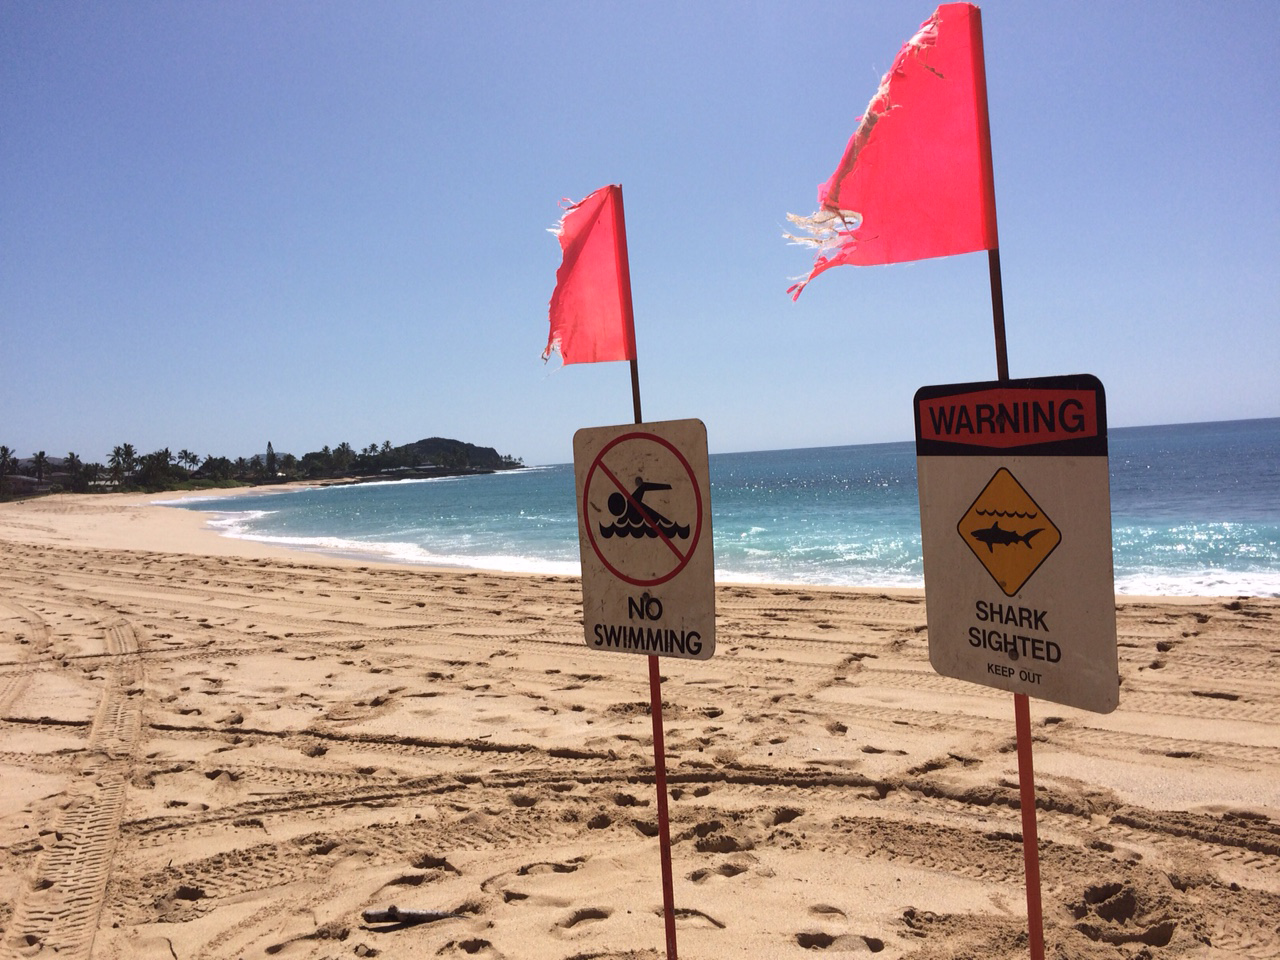 Signs warning of a shark sighting are posted at Makaha Beach Park in Waianae, Hawaii, on Oct. 29, 2015.